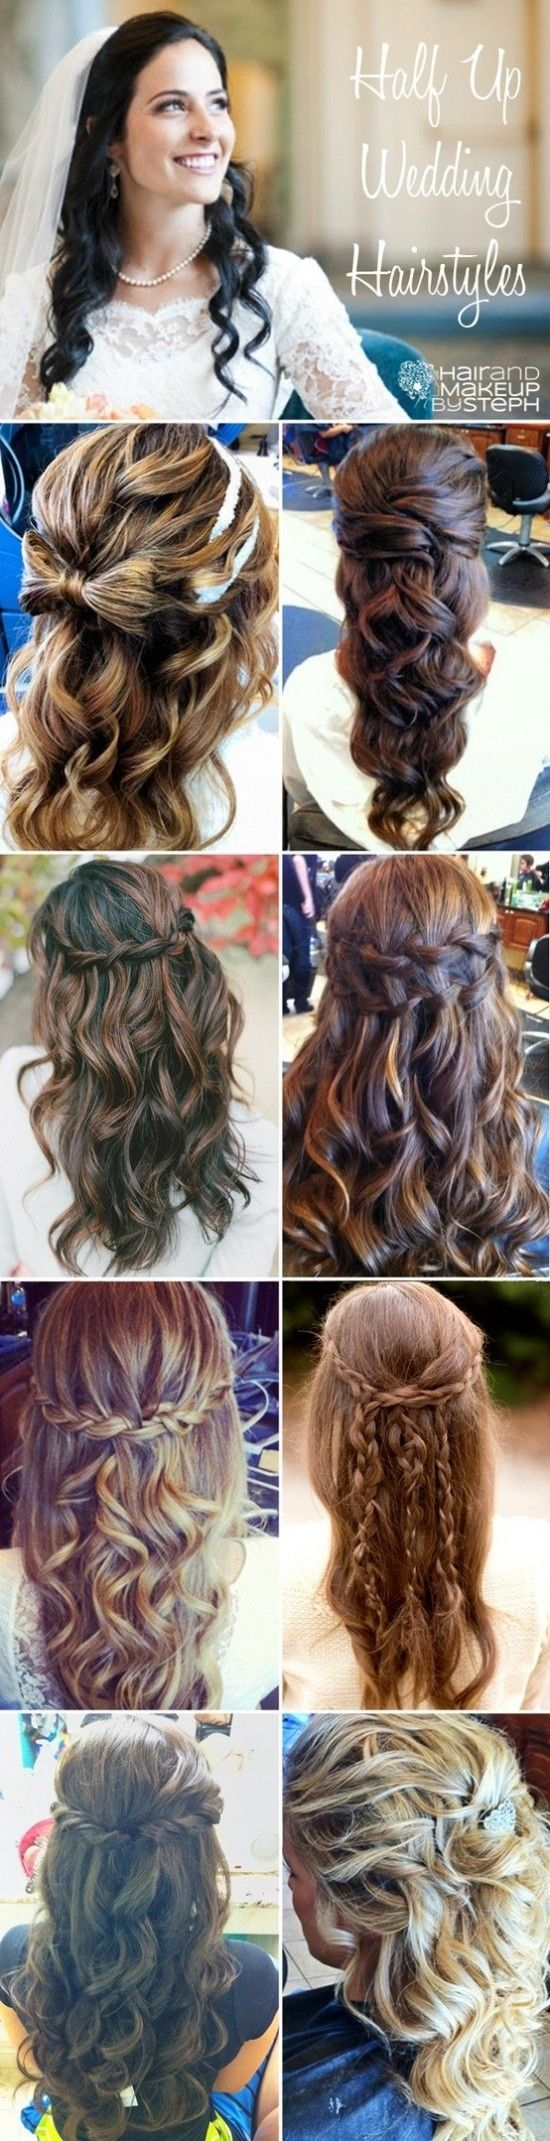 super cute hair styles Pretty hair Pinterest Hair style